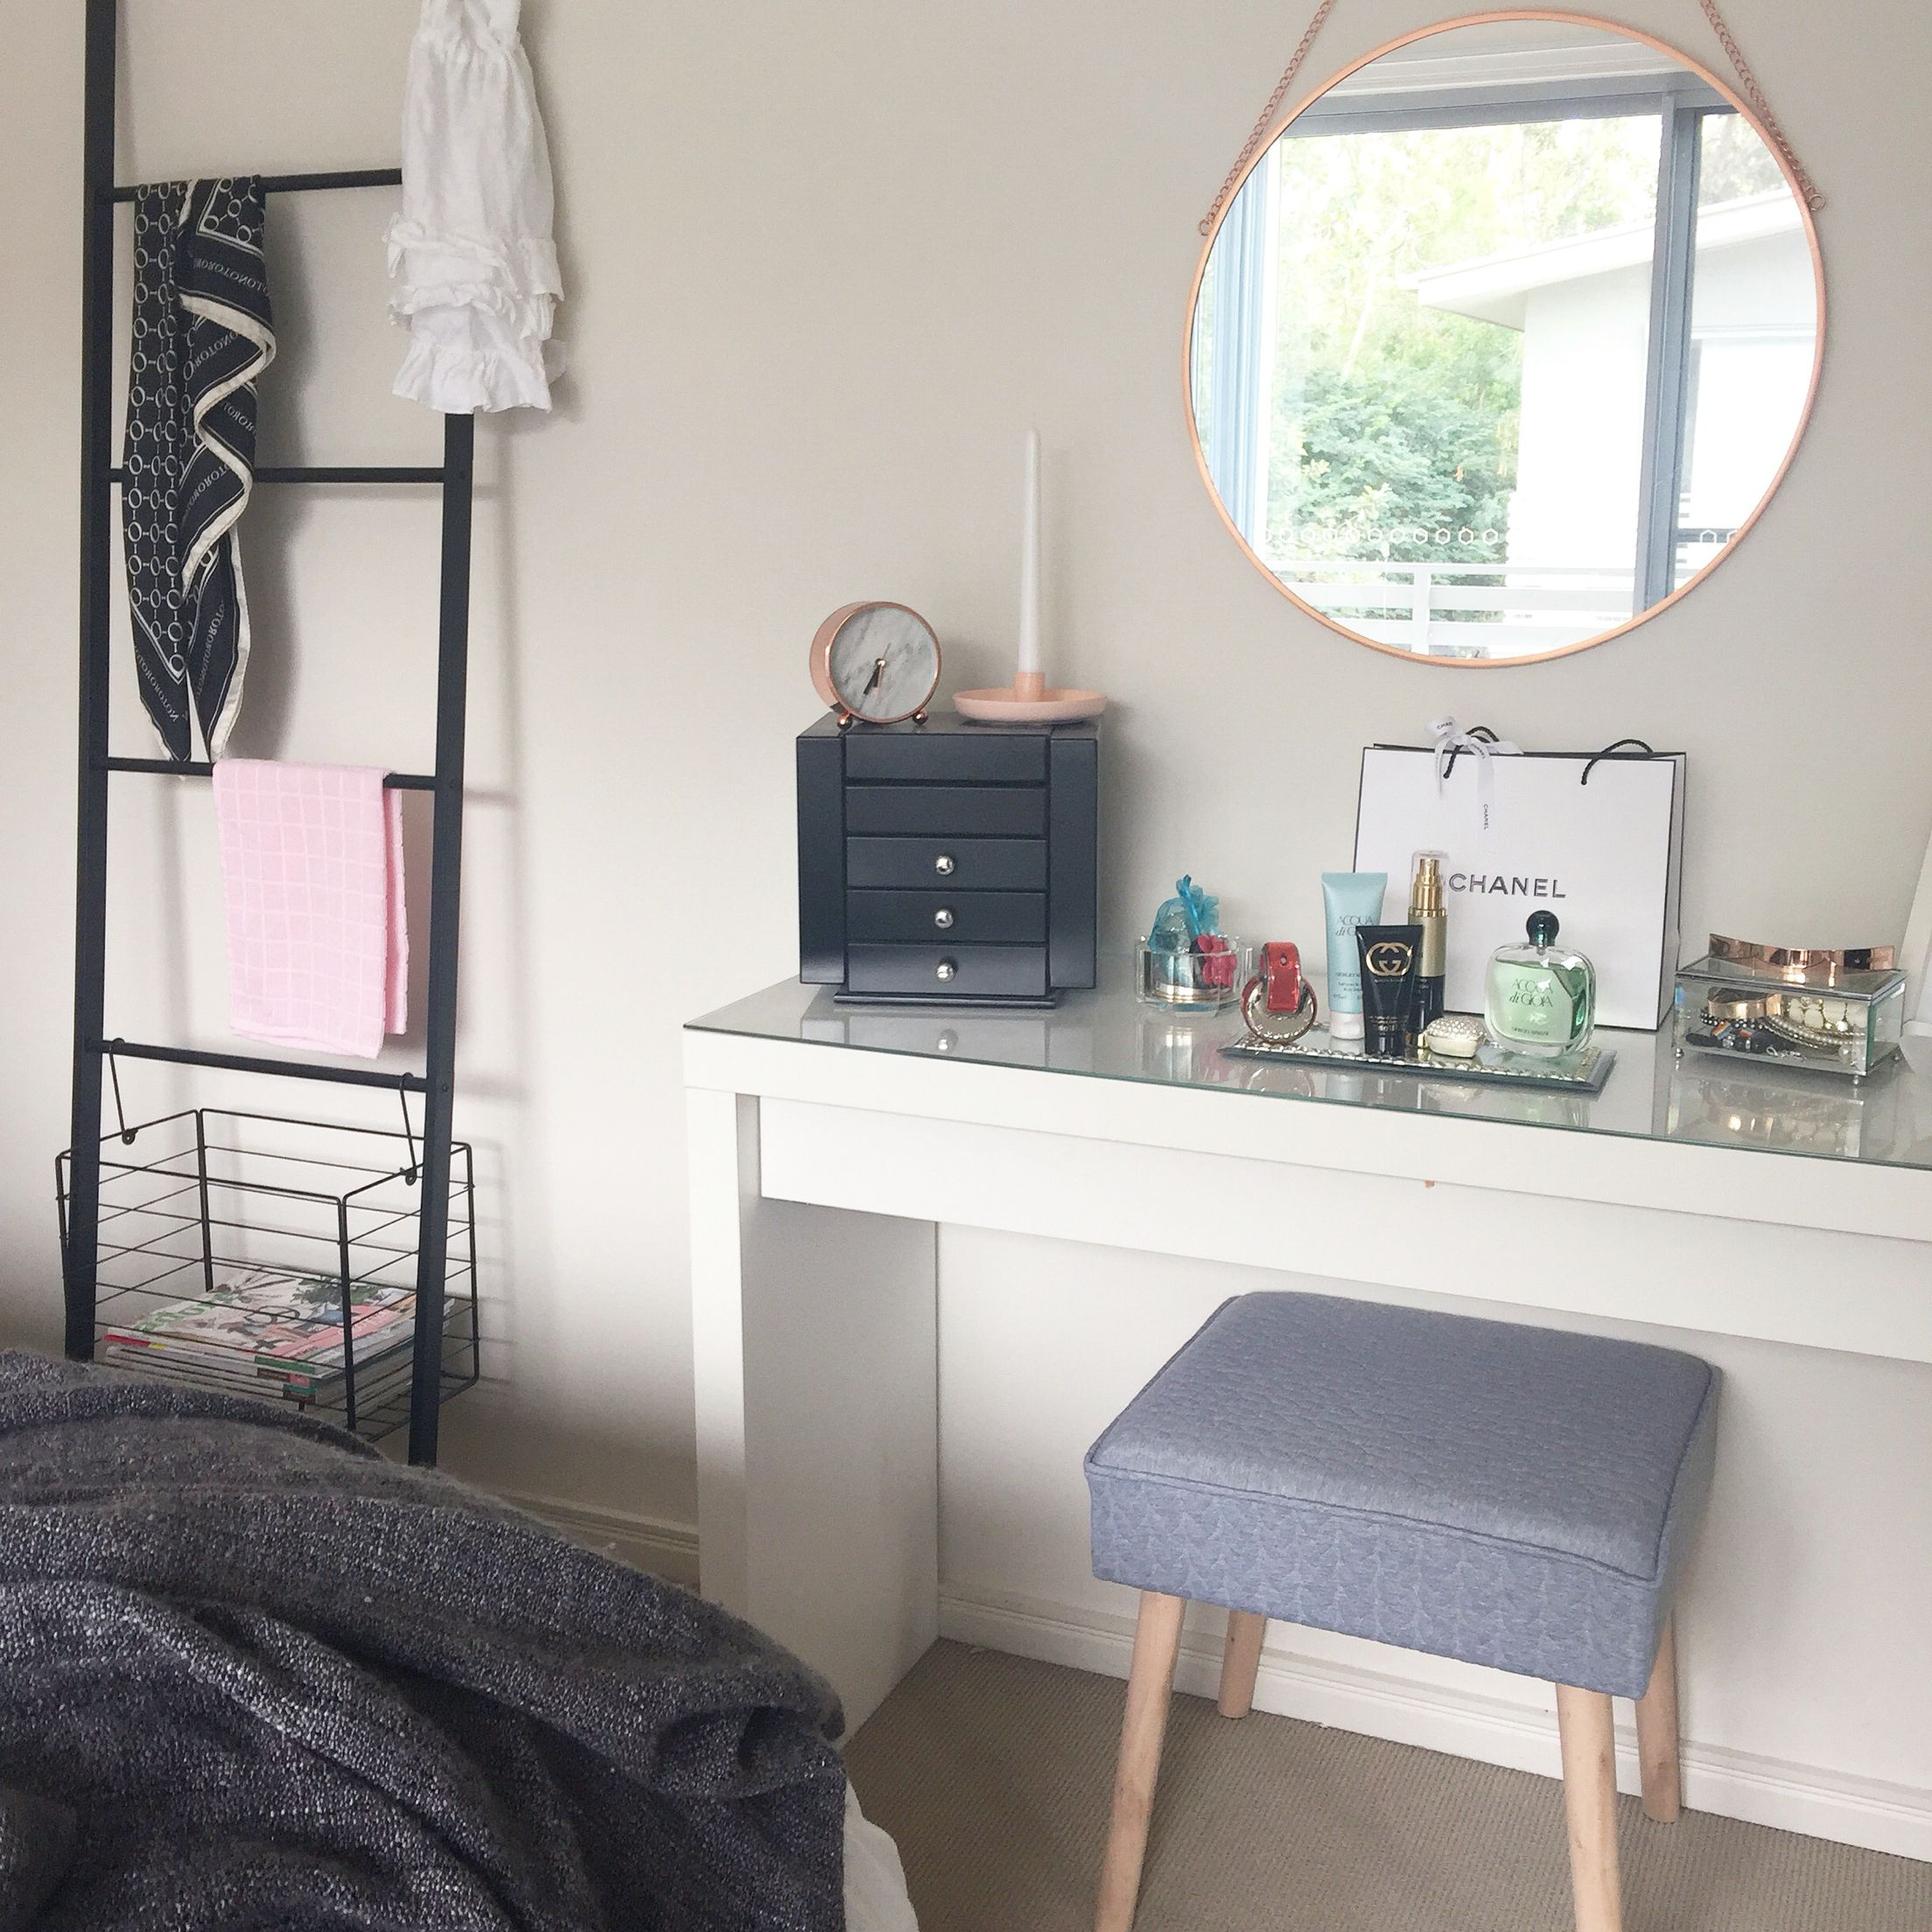 kmart australia ikea super amart | kmart home, diy bedroom